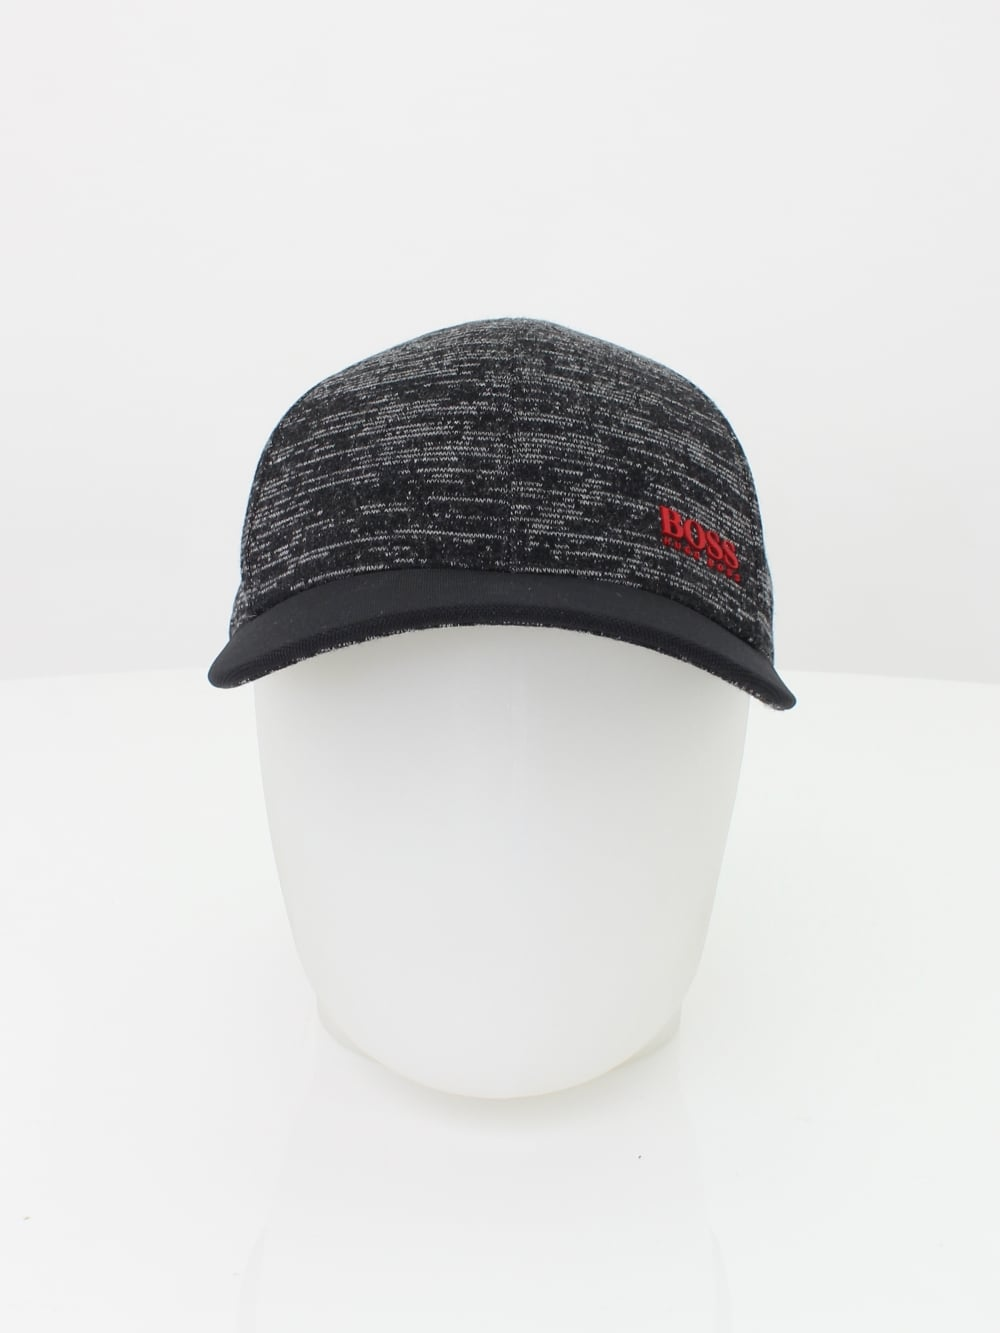 c0d4f04ad938a Hugo Boss X Cap in Black - Northern Threads